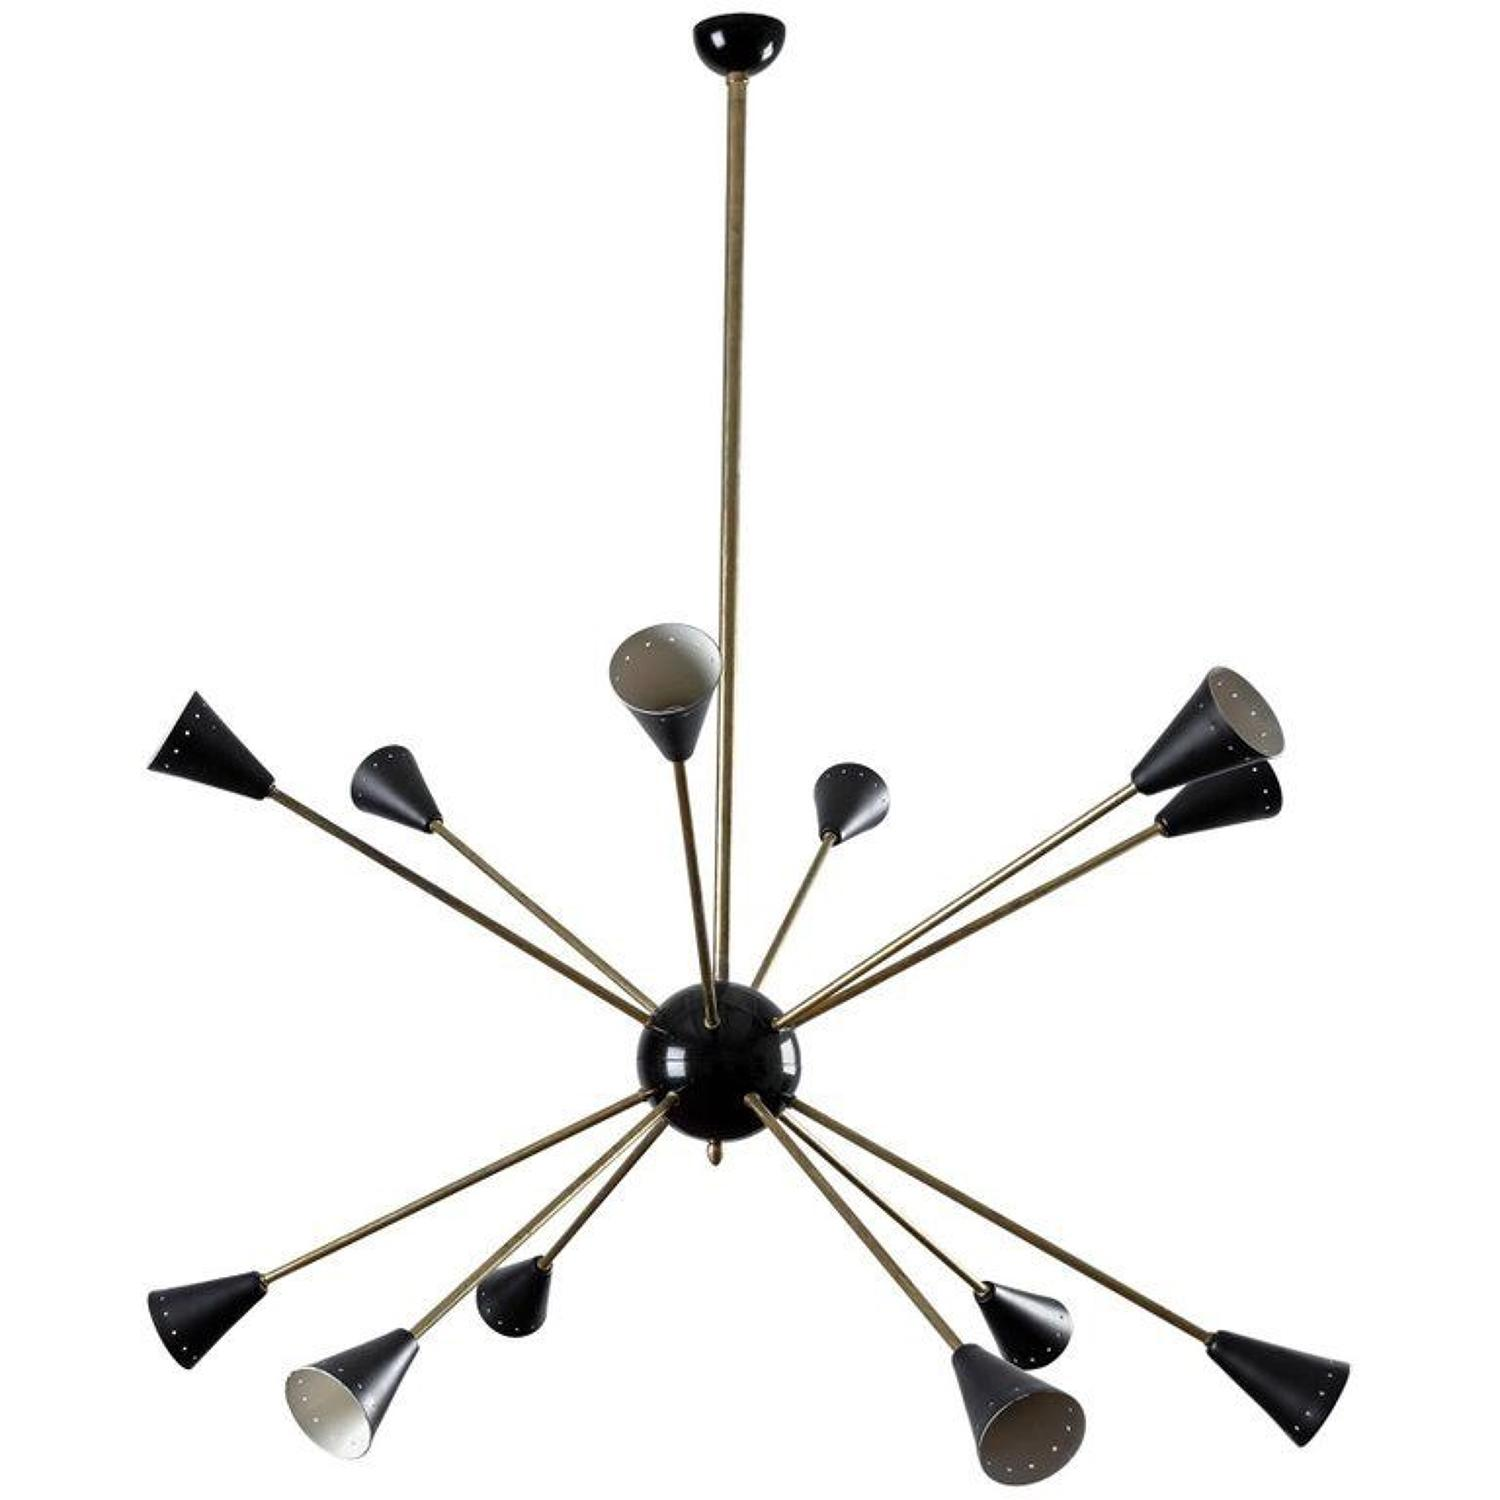 Large Stylish Italian 1950 Sputnik Chandelier in the Style of Stilnovo